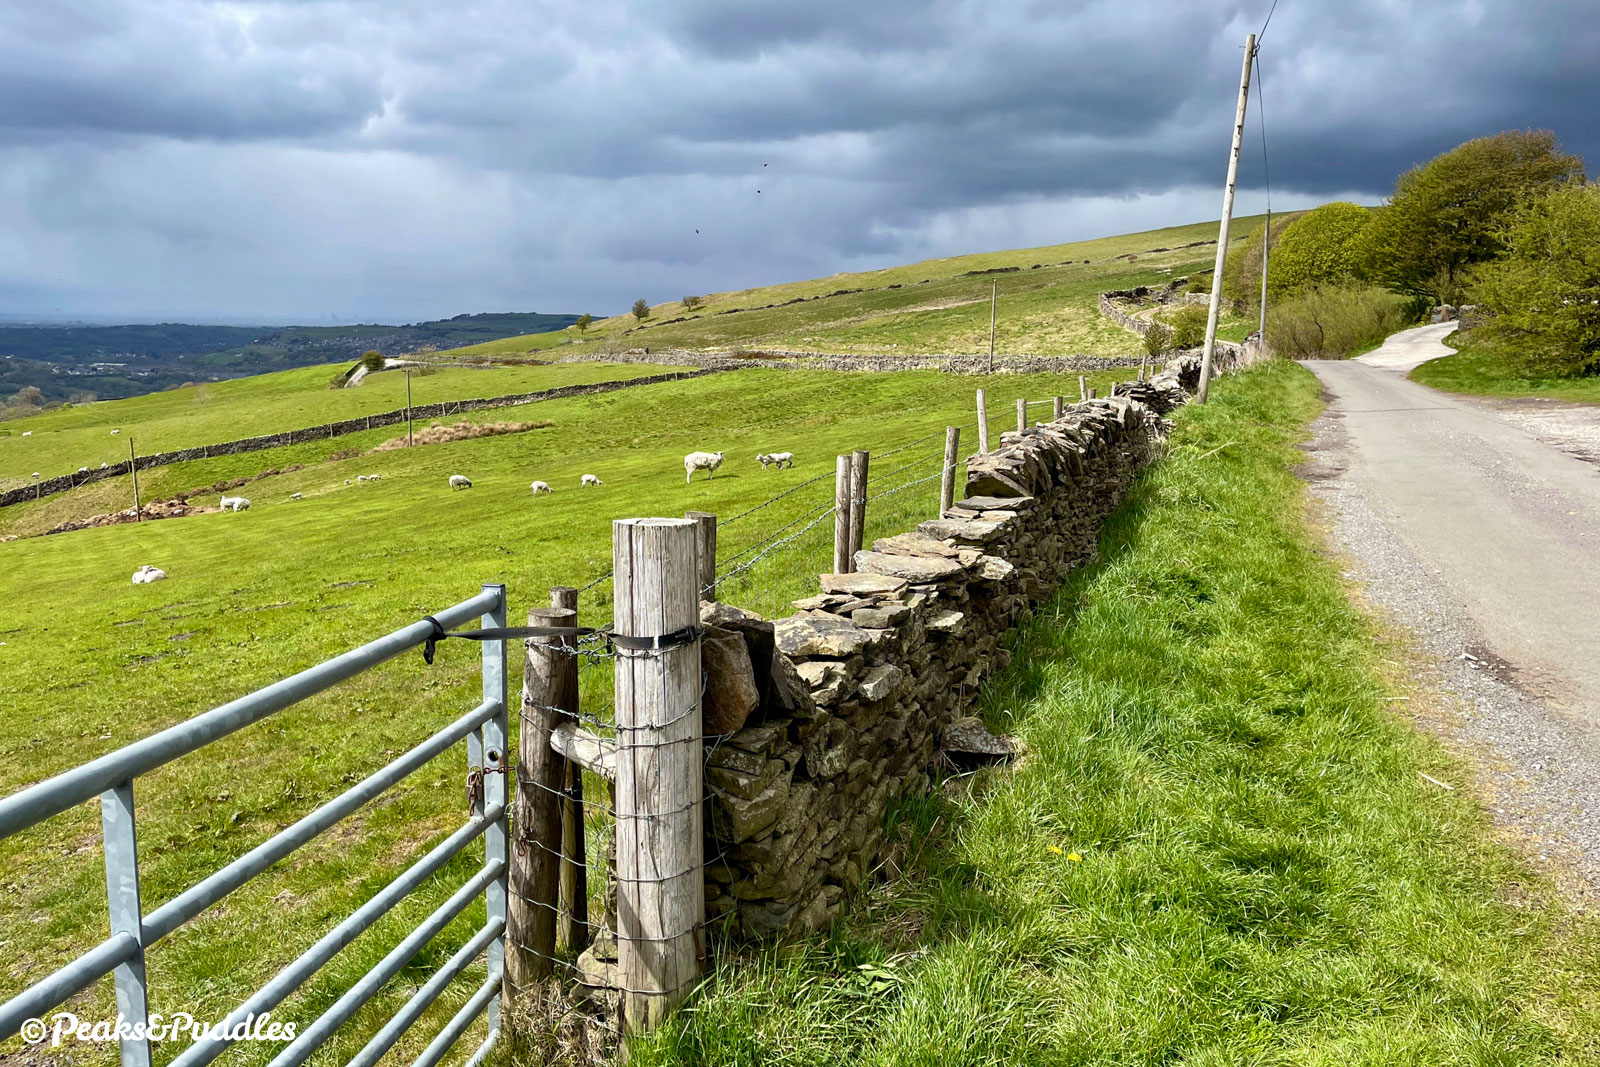 As a bridleway from higher on Chinley Churn joins from the right, the sudden drop back down the hillside can now be seen ahead.